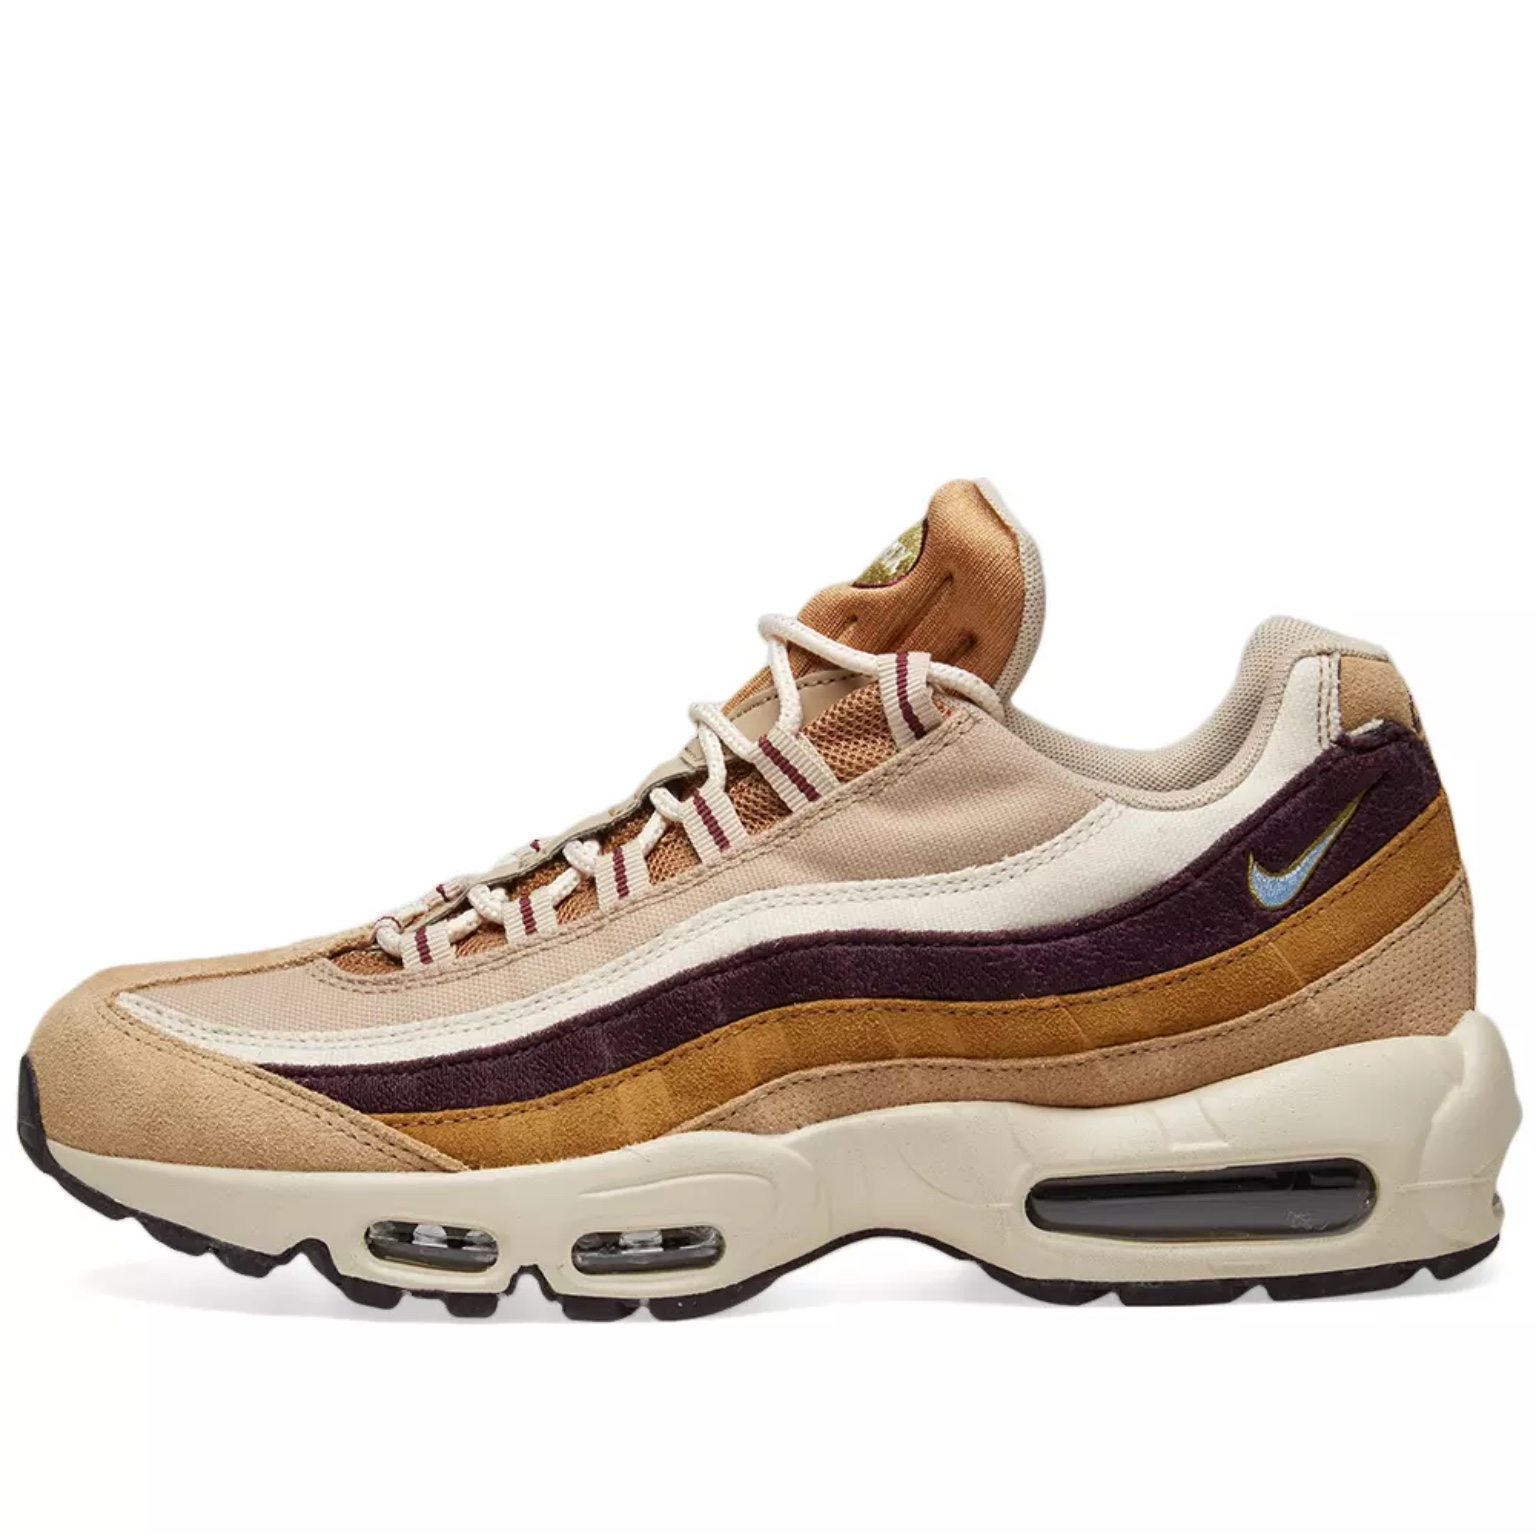 Nike Air Max 95 Premium 'Desert, Royal And Burgundy' Depop